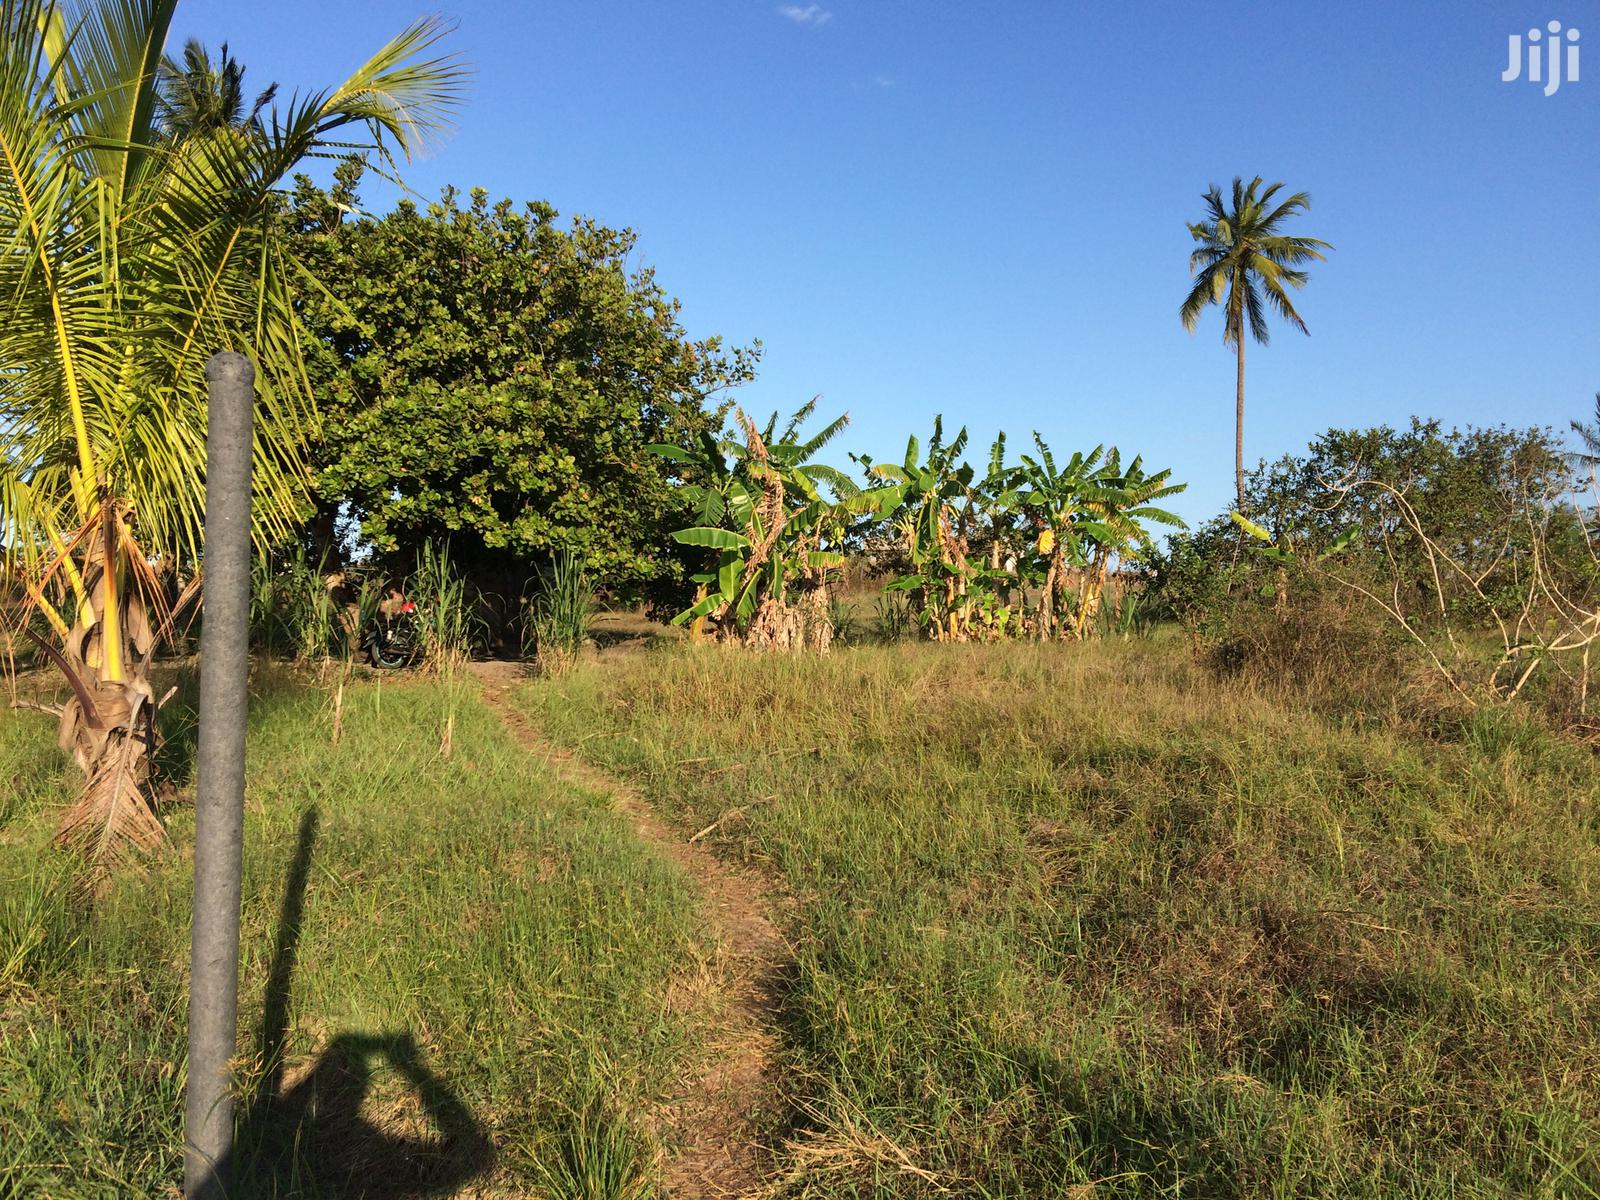 1.8 Acres Of Land For Sale At Kigamboni Bamba.